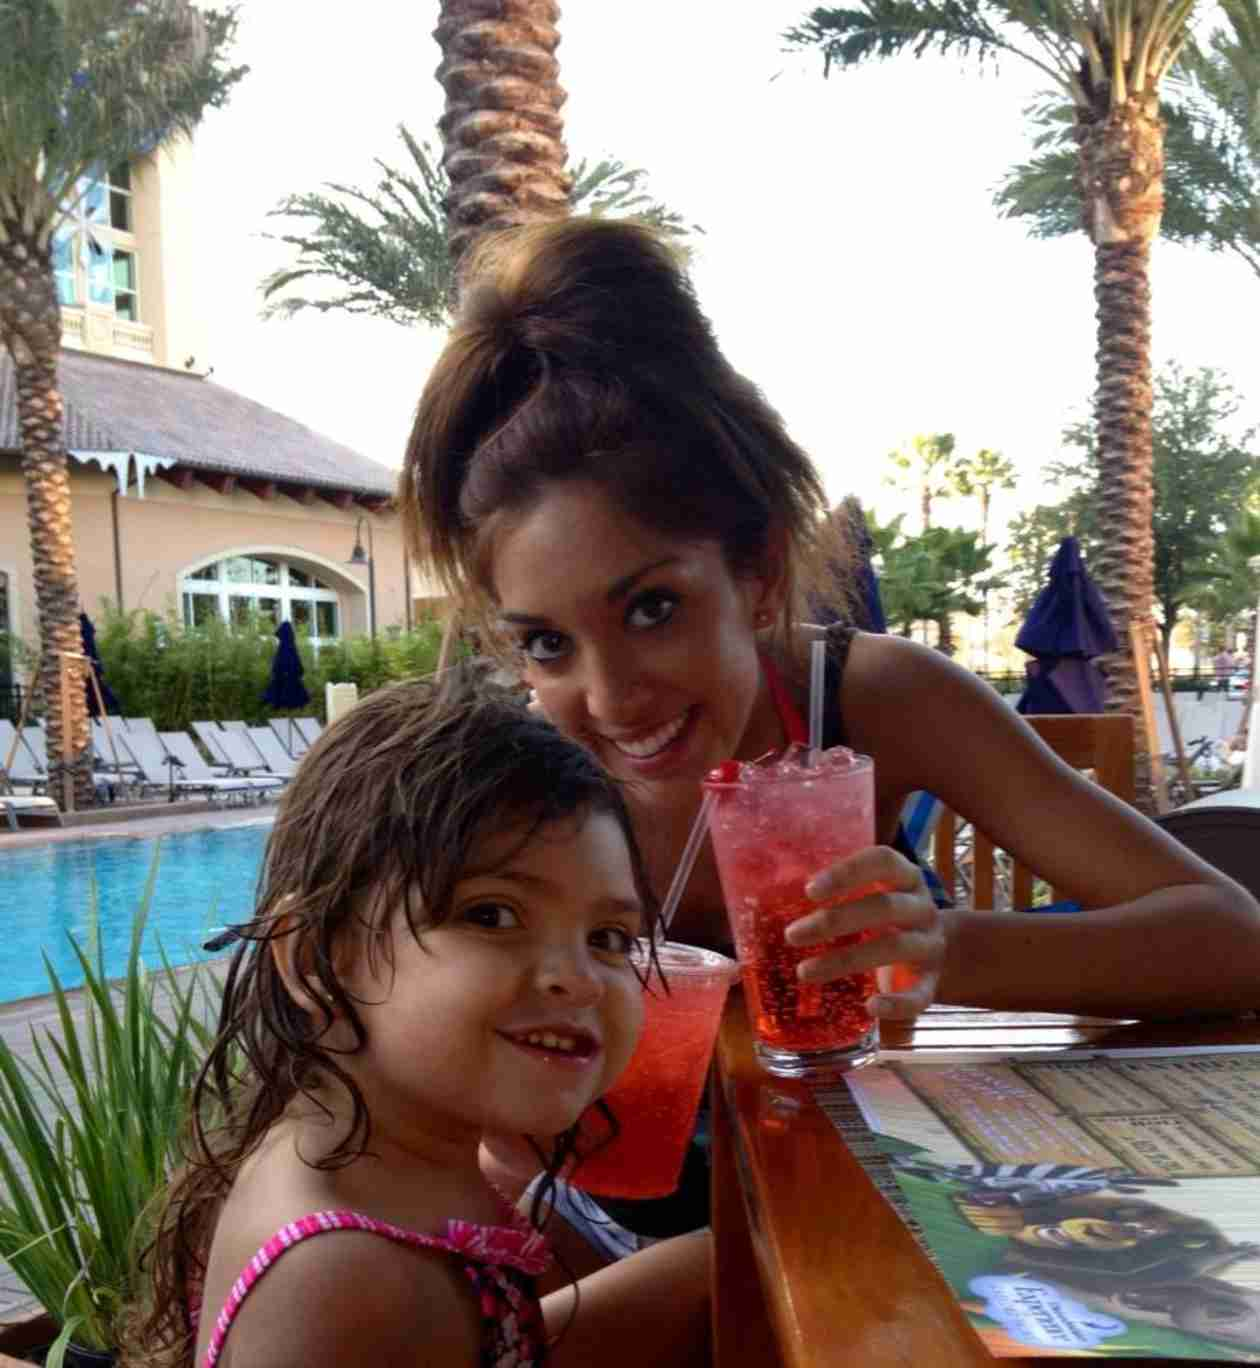 Farrah Abraham Celebrates Mother's Day — What Did Sophia Get Her? (PHOTO)